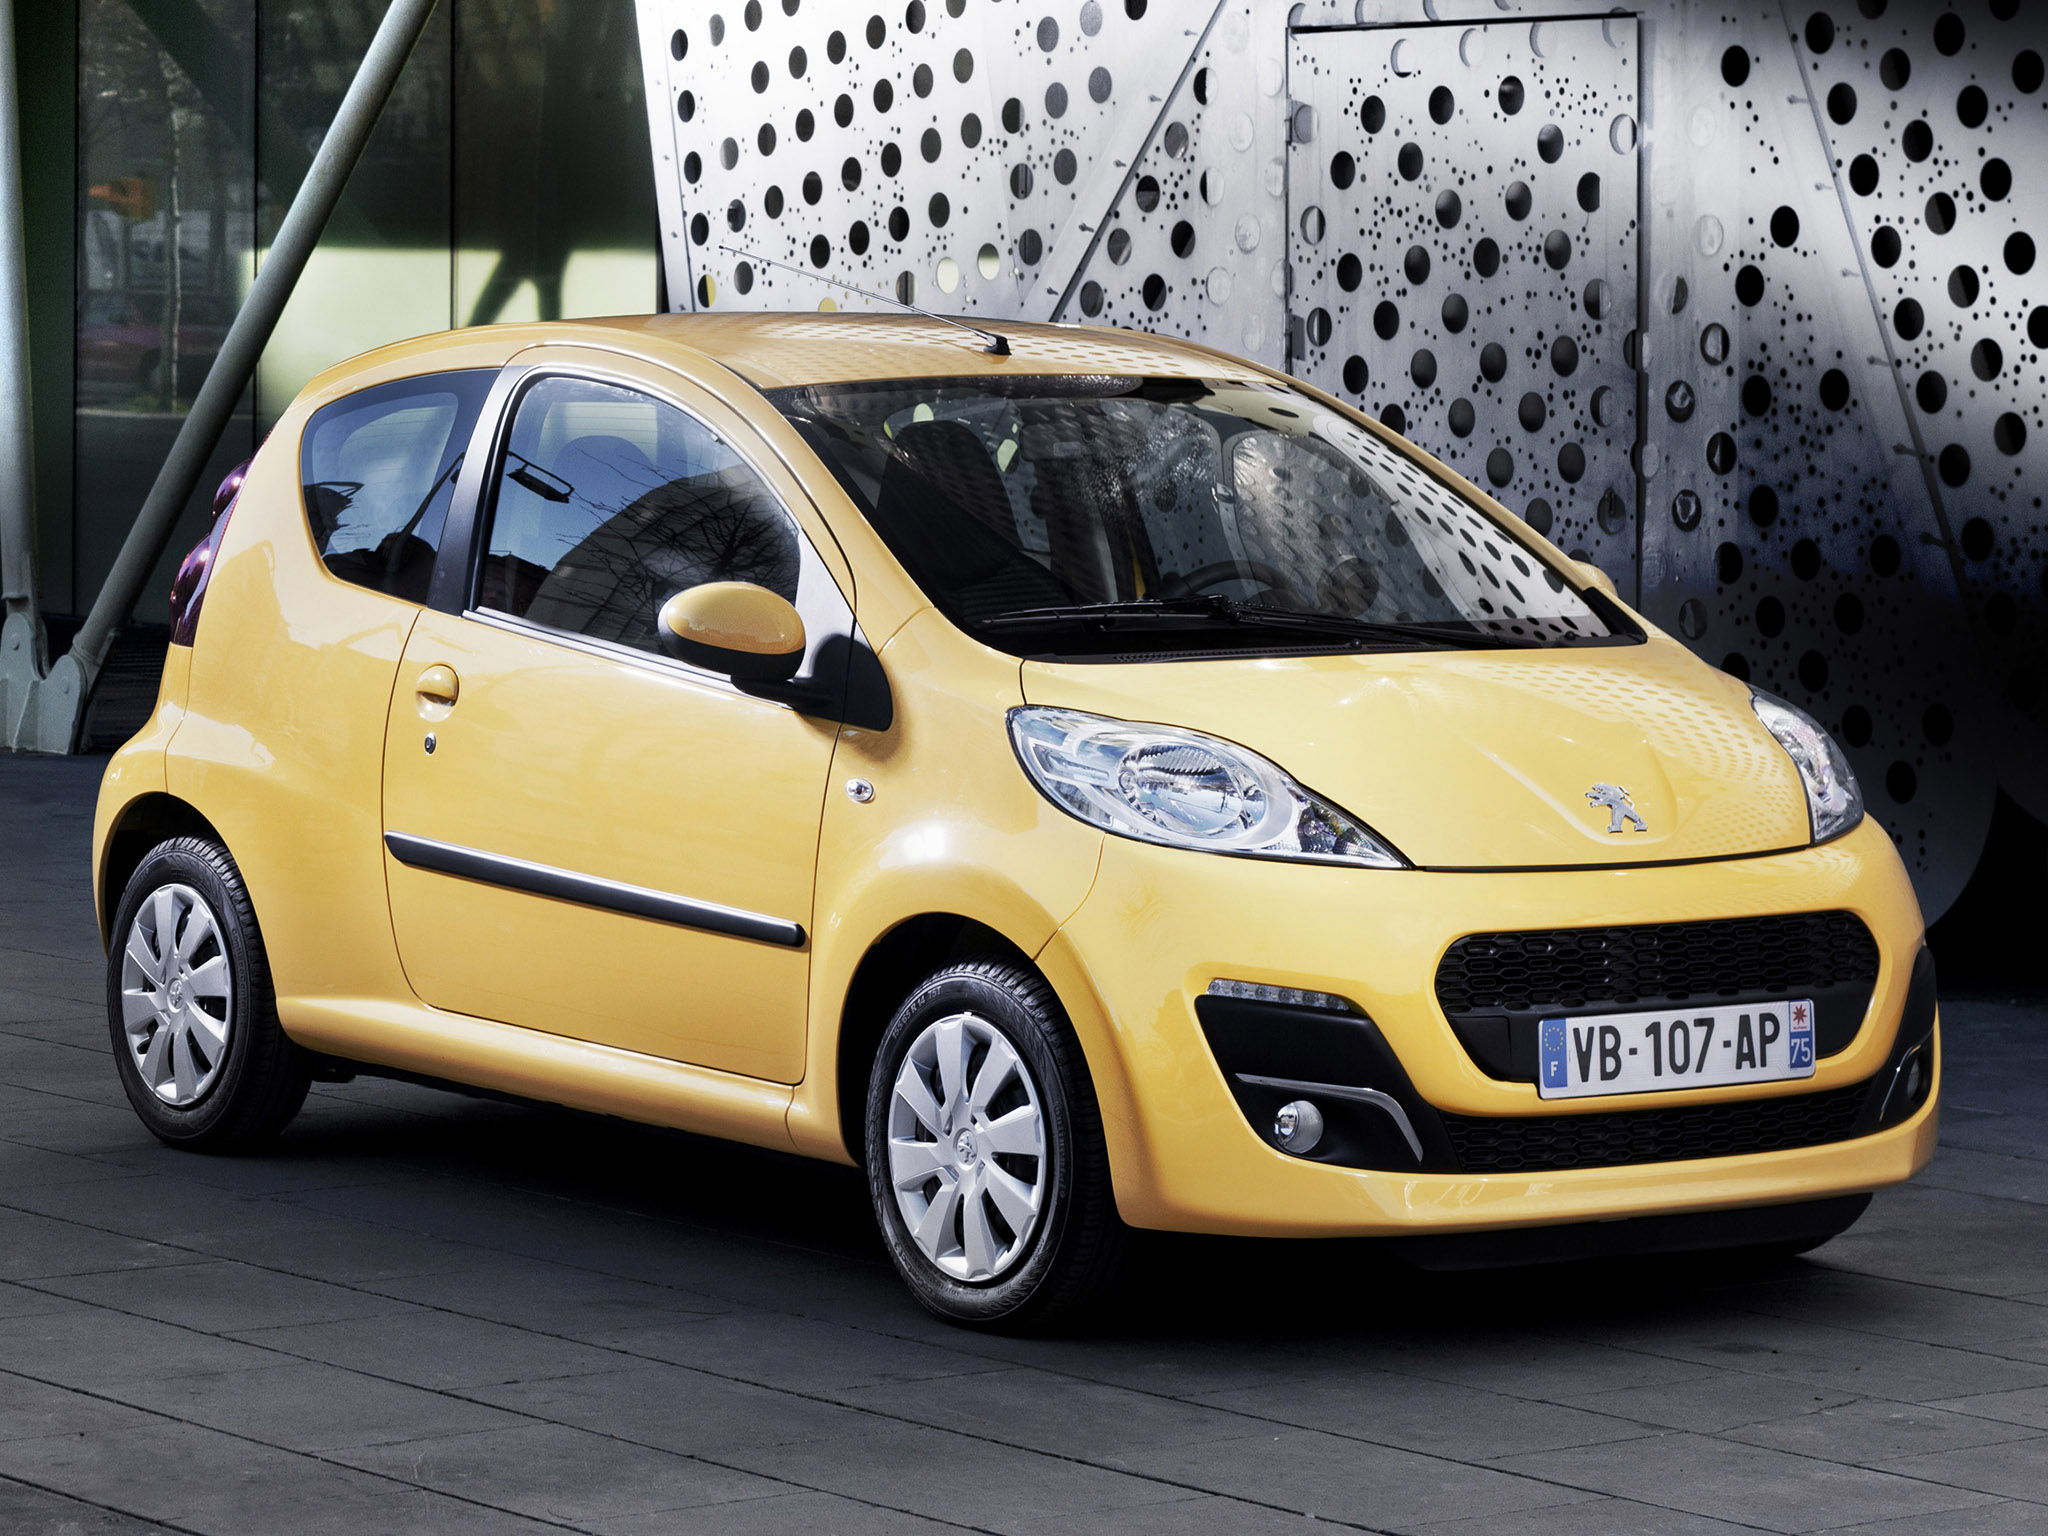 peugeot 107 3 door 2012 peugeot 107 3 door 2012 photo 05 car in pictures car photo gallery. Black Bedroom Furniture Sets. Home Design Ideas